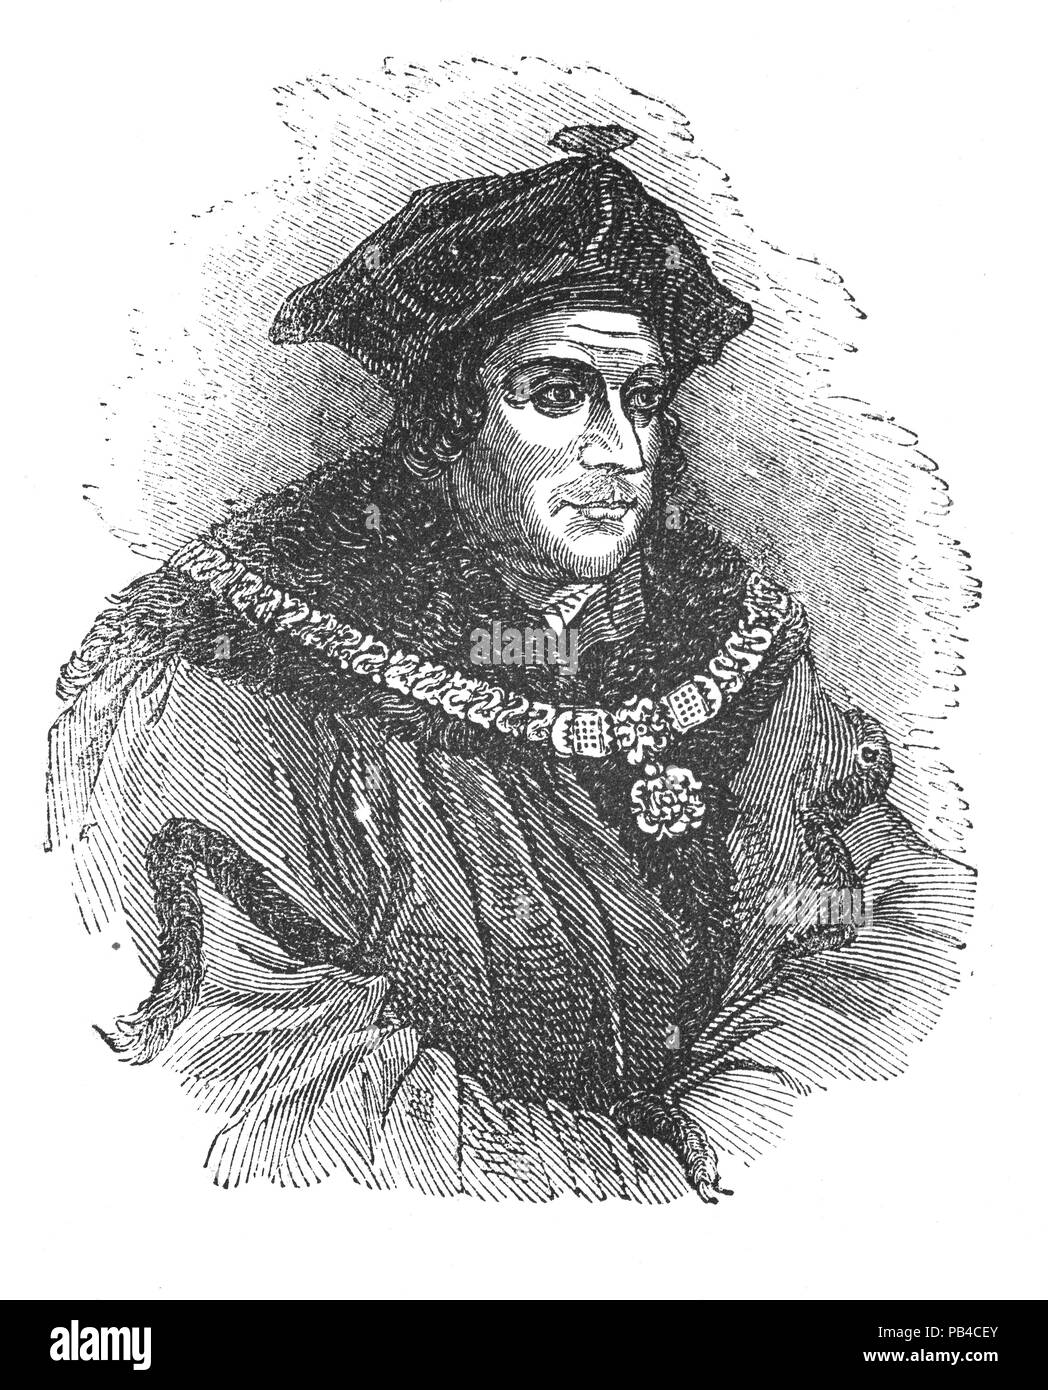 Portrait of Sir Thomas More (1478-1535), venerated in the Catholic Church as Saint Thomas More,was an English lawyer, social philosopher, author, statesman, and noted Renaissance humanist. He was also councillor to Henry VIII, and Lord High Chancellor of England from 1529 to 1532. He opposed the Protestant Reformation and the king's separation from the Catholic Church; and refused to acknowledge Henry as Supreme Head of the Church of England and the annulment of his marriage to Catherine of Aragon. After refusing to take the Oath of Supremacy, he was convicted of treason and beheaded. - Stock Image